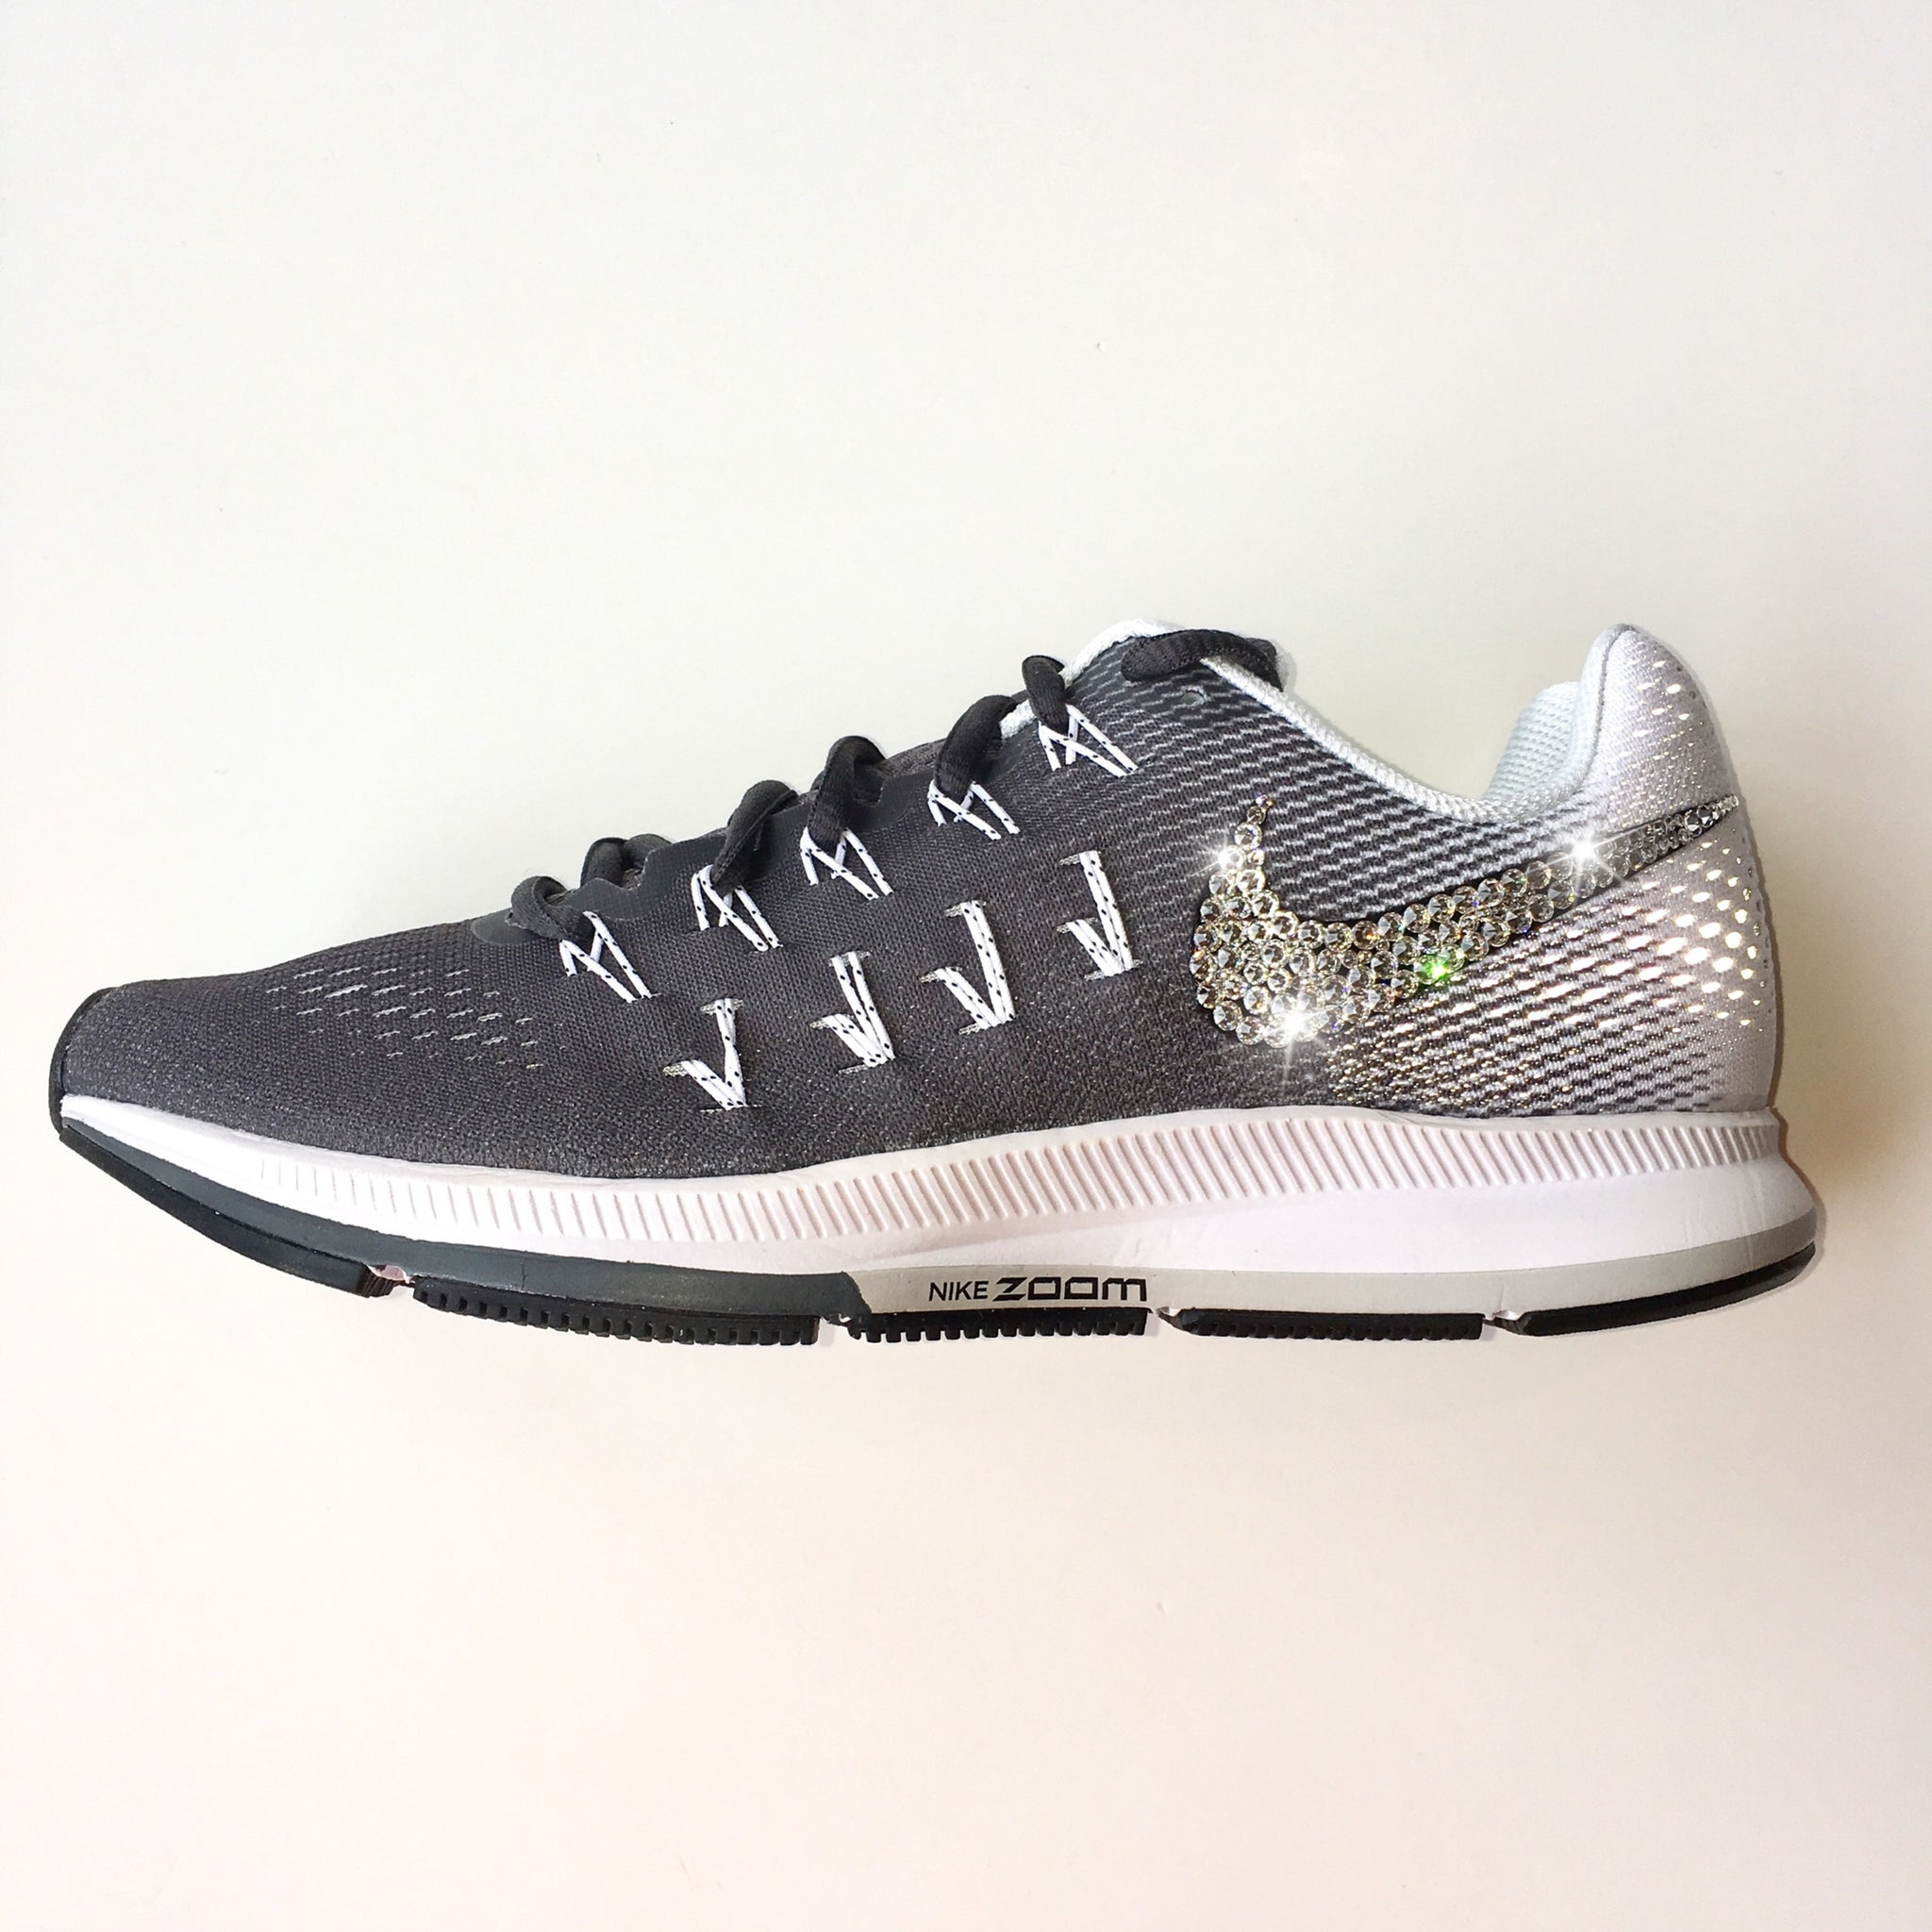 ce1f6fa1bf26a Bling Nike Air Zoom Pegasus 33 Shoes with Swarovski Crystals   Dark Grey   Bedazzled  w ...